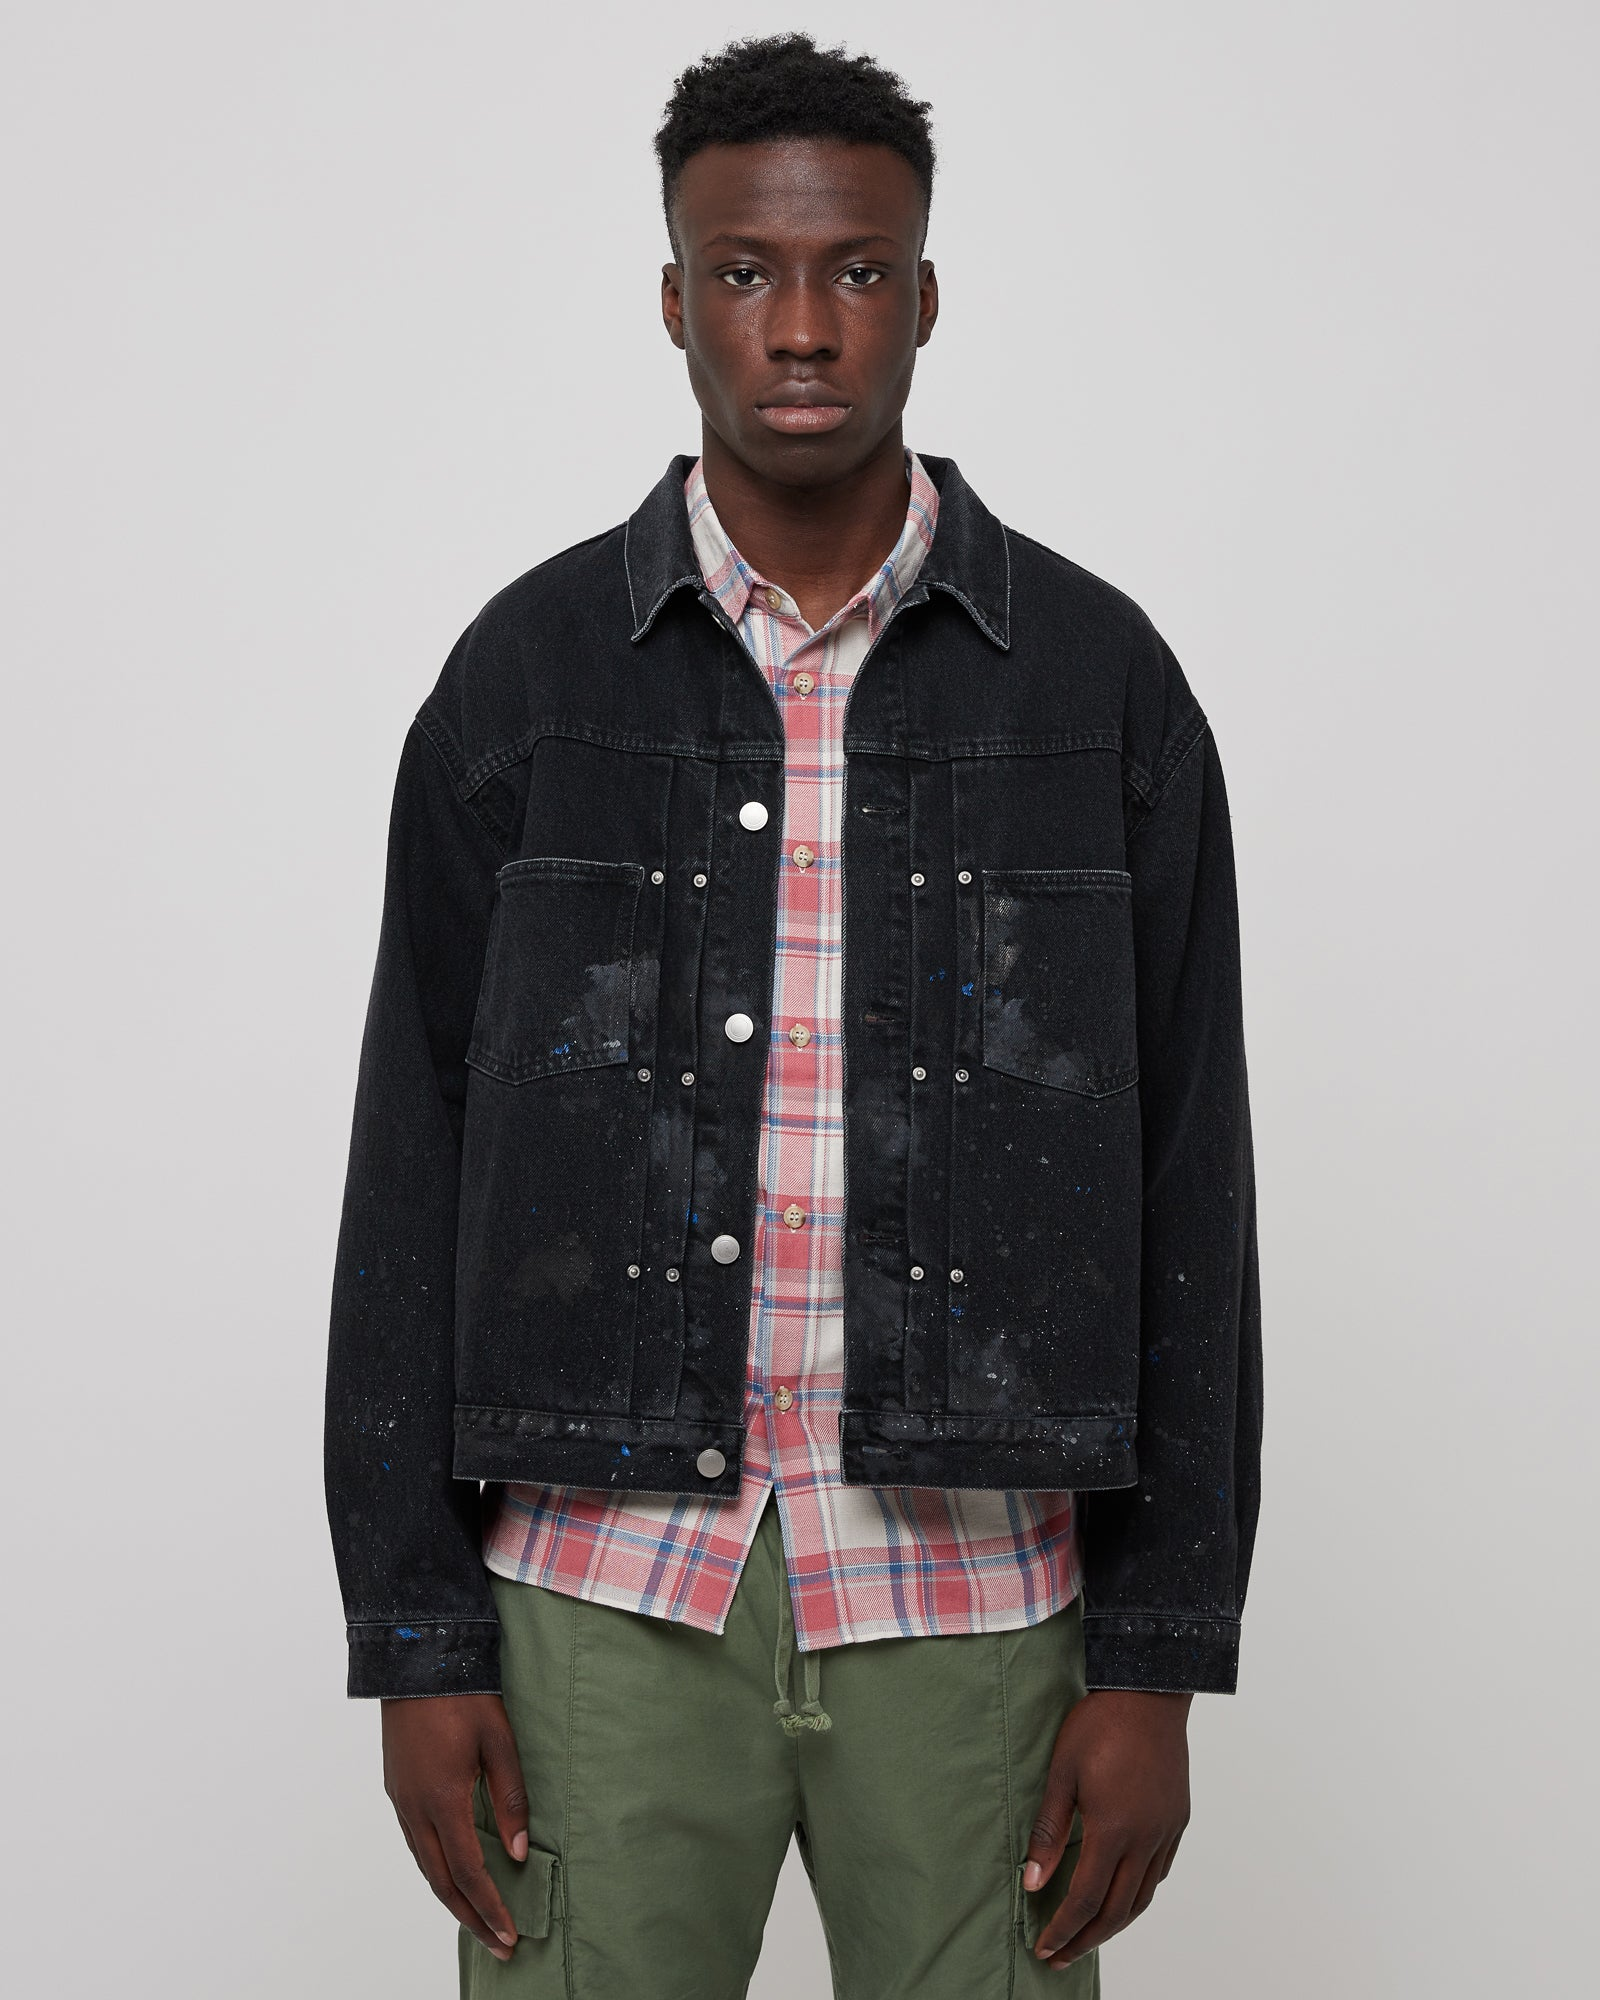 Thumper Jacket type II in Dale